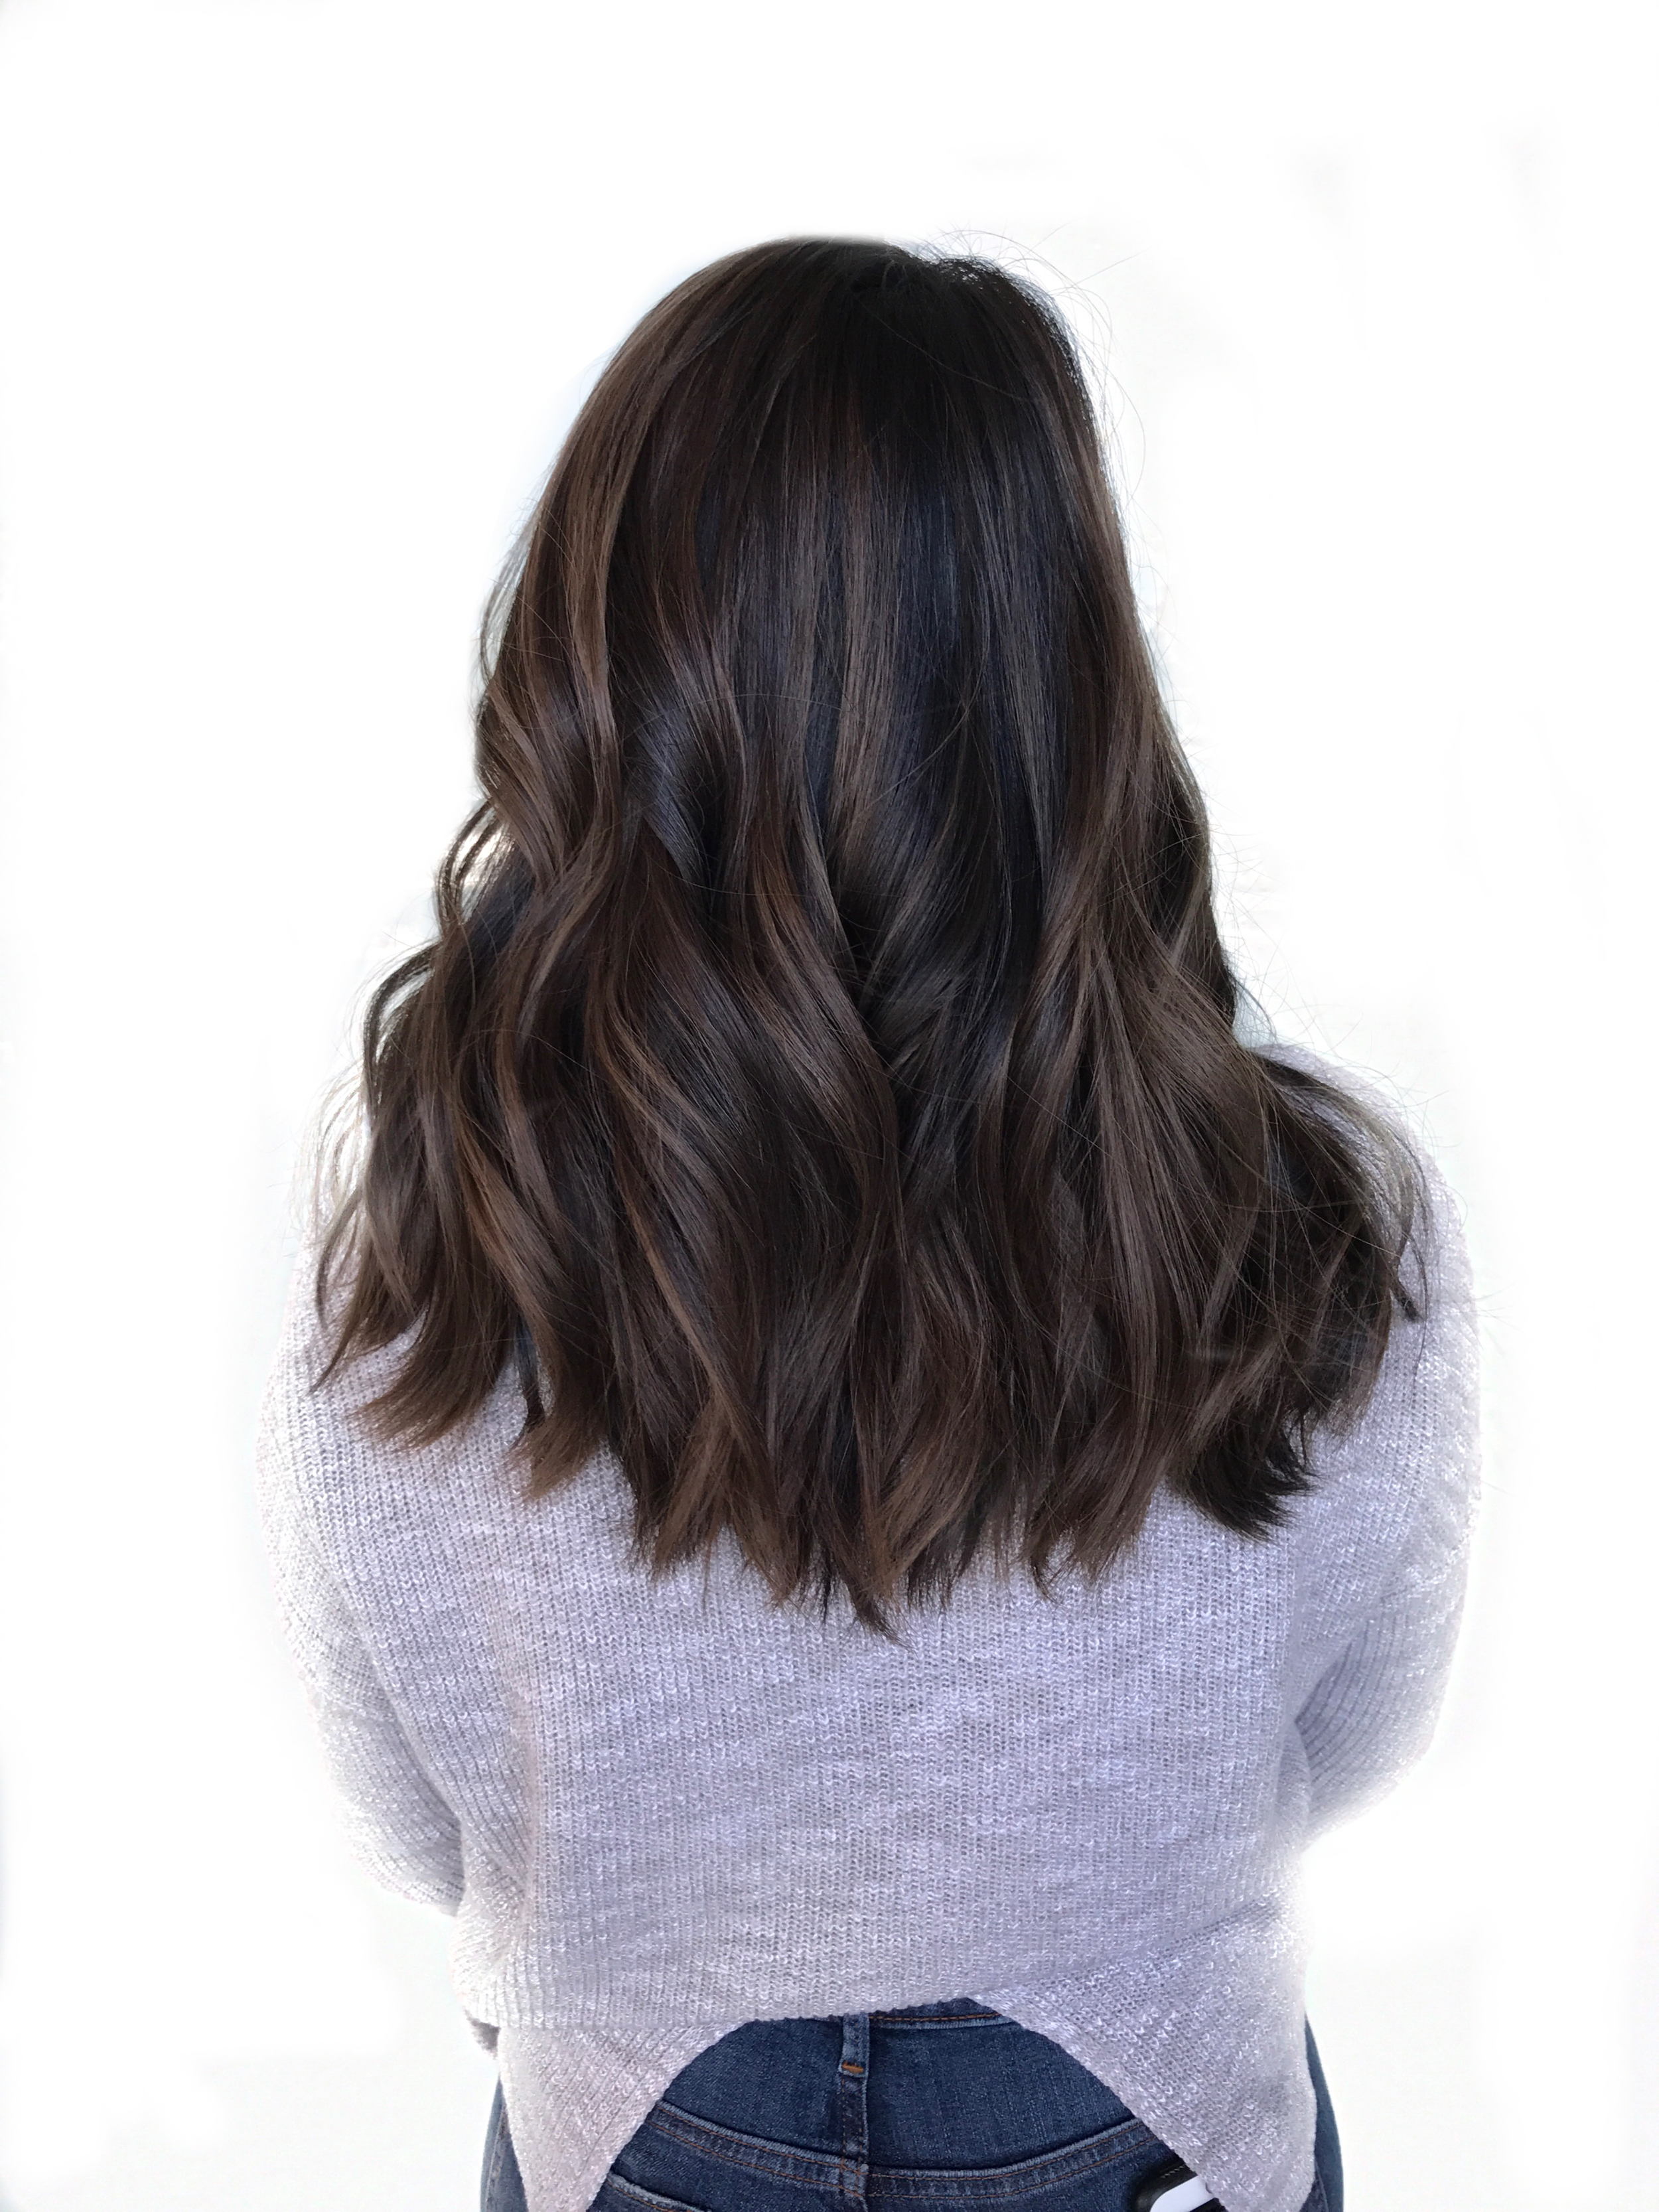 Balayage ash brown, textured mid length back